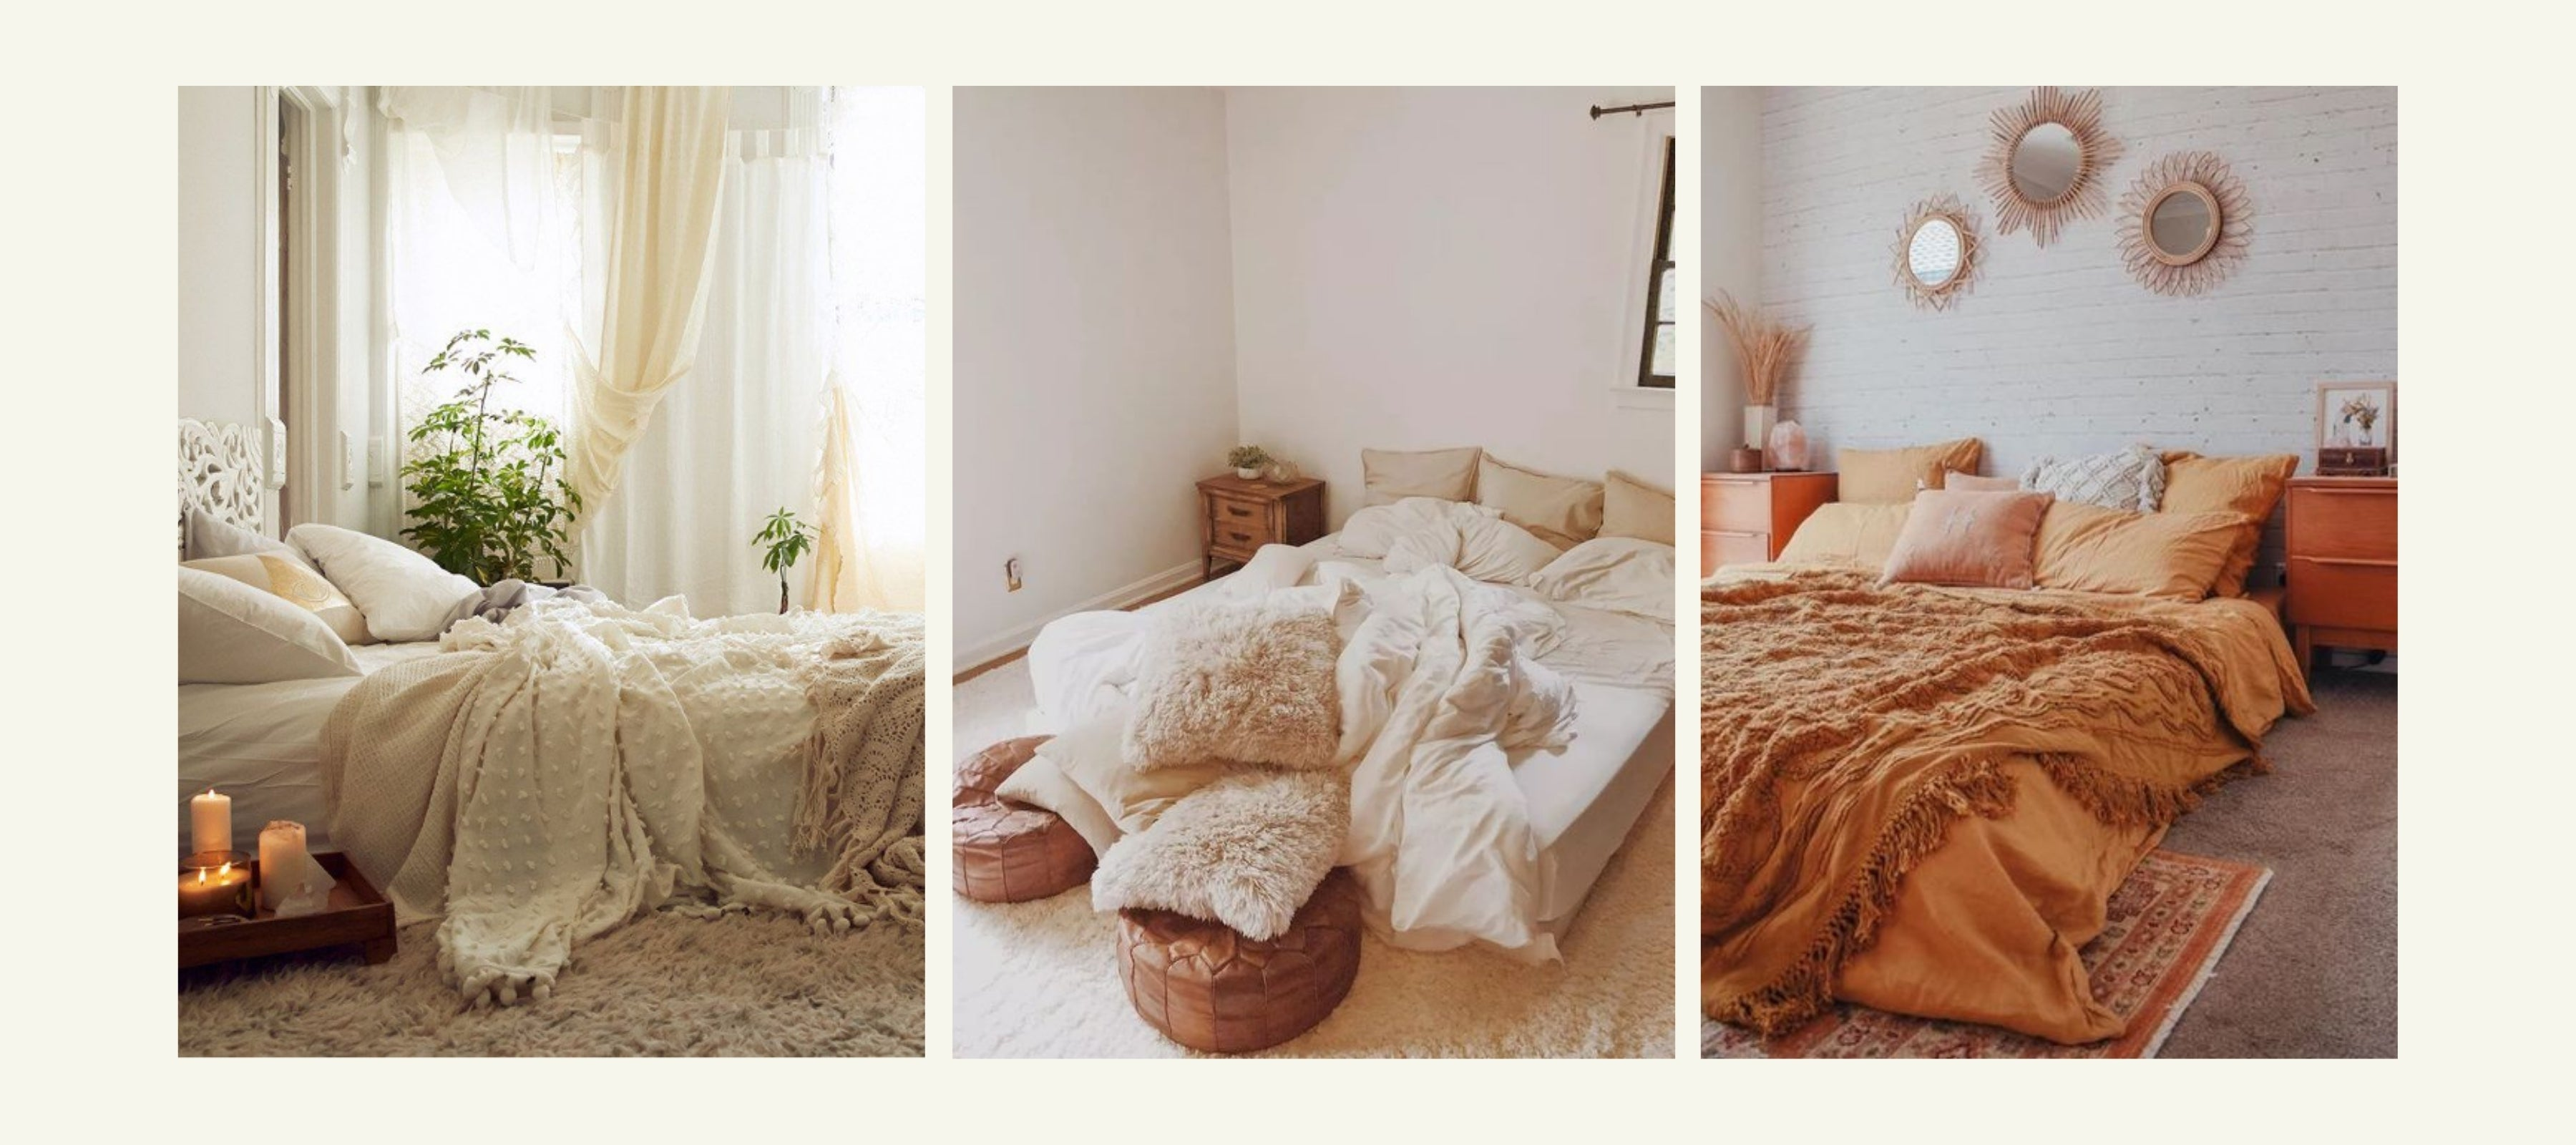 How to Make Your Room Look Good Without a Bed Frame